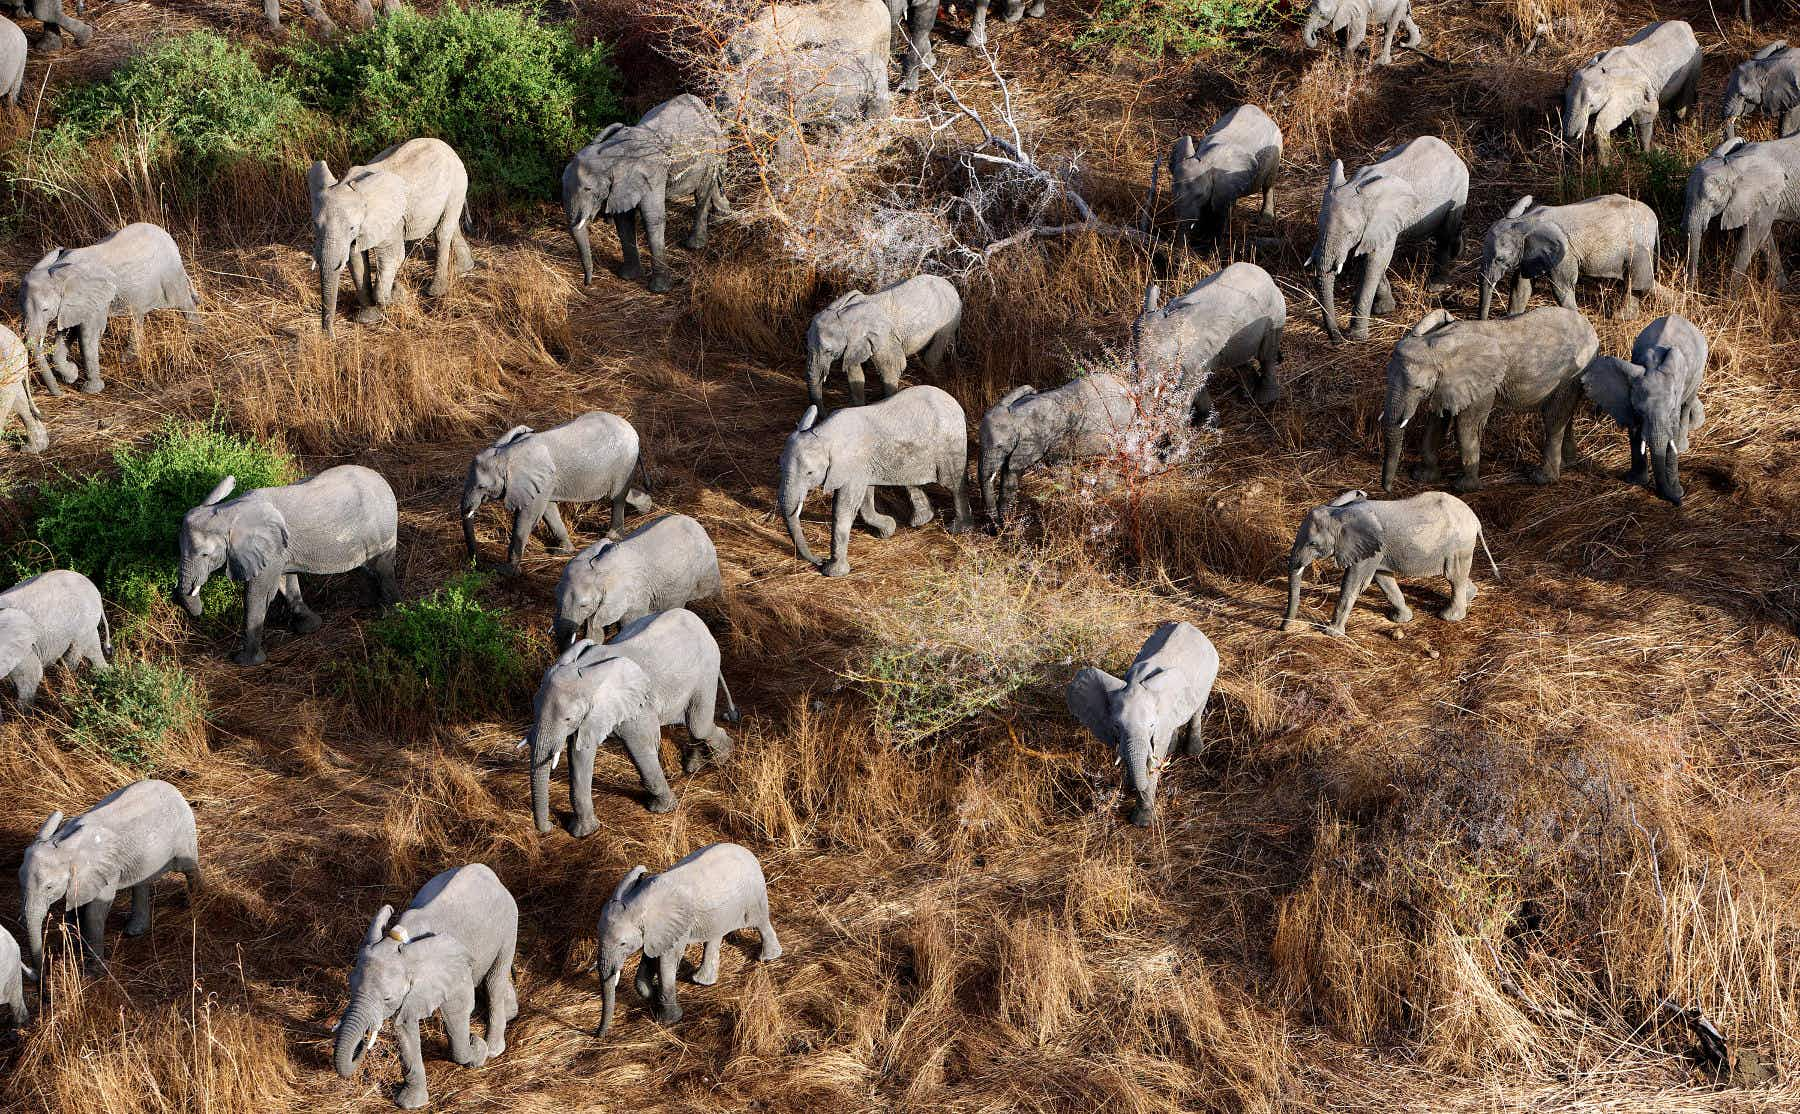 How Chad's Zakouma National Park became one of Africa's greatest conservation success stories